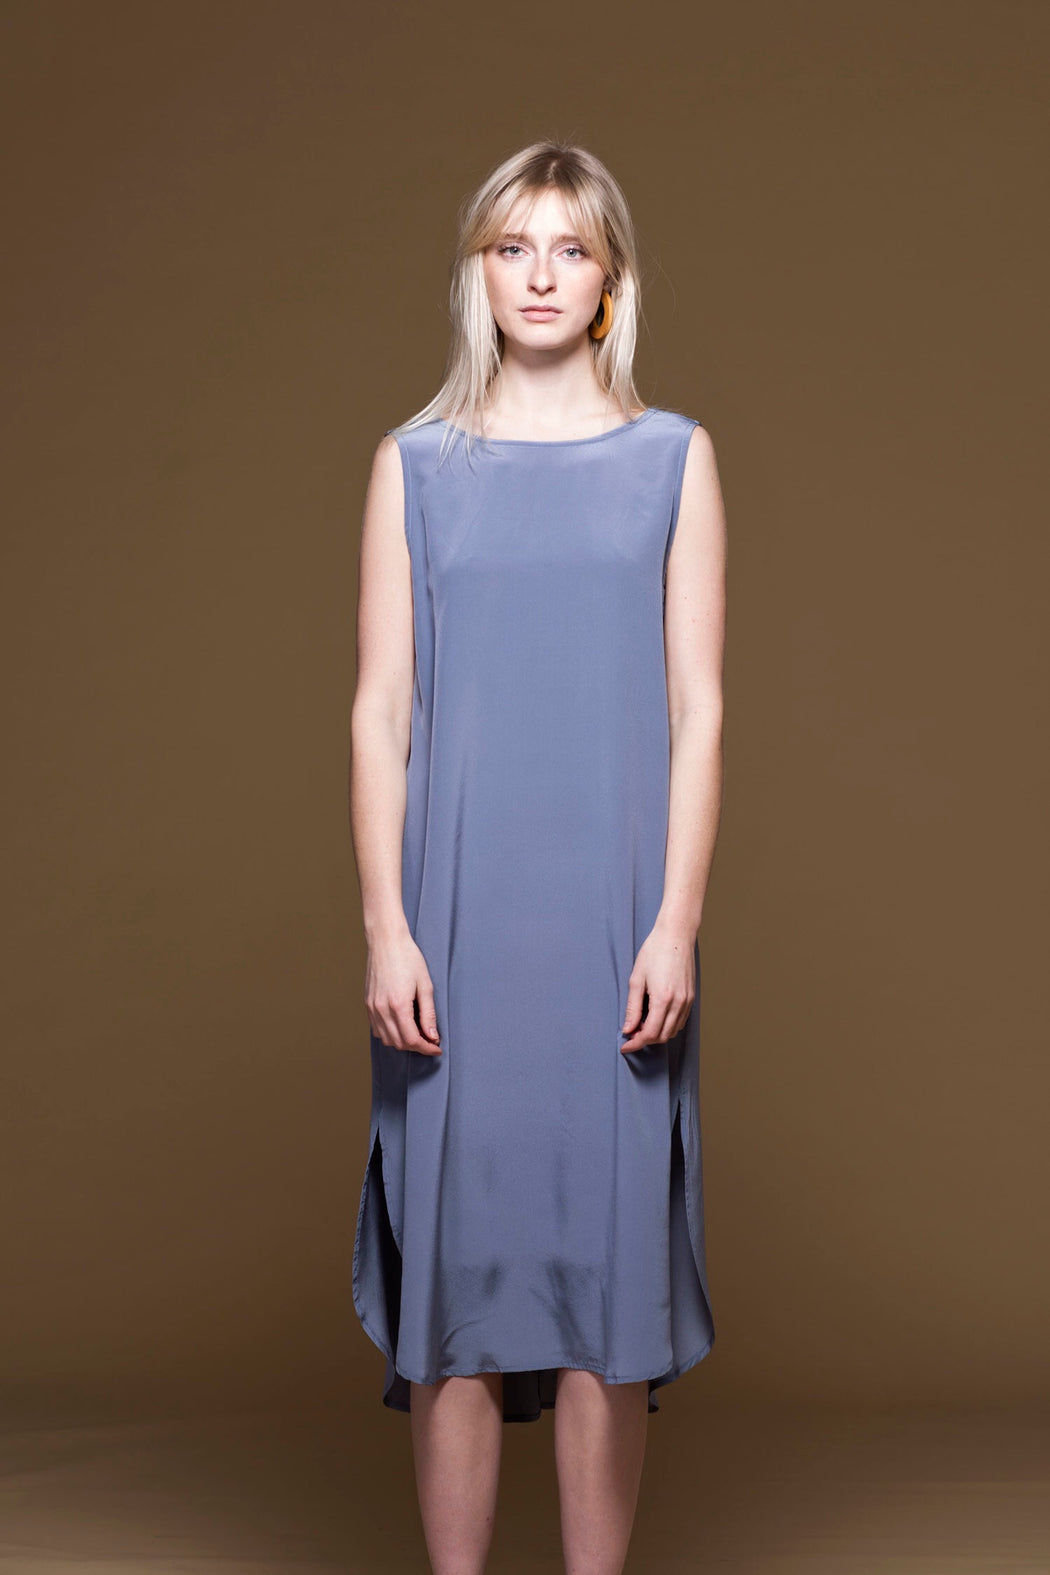 Winsome Goods | Covil Dress 2.0 / Cloud Blue | Hazel & Rose